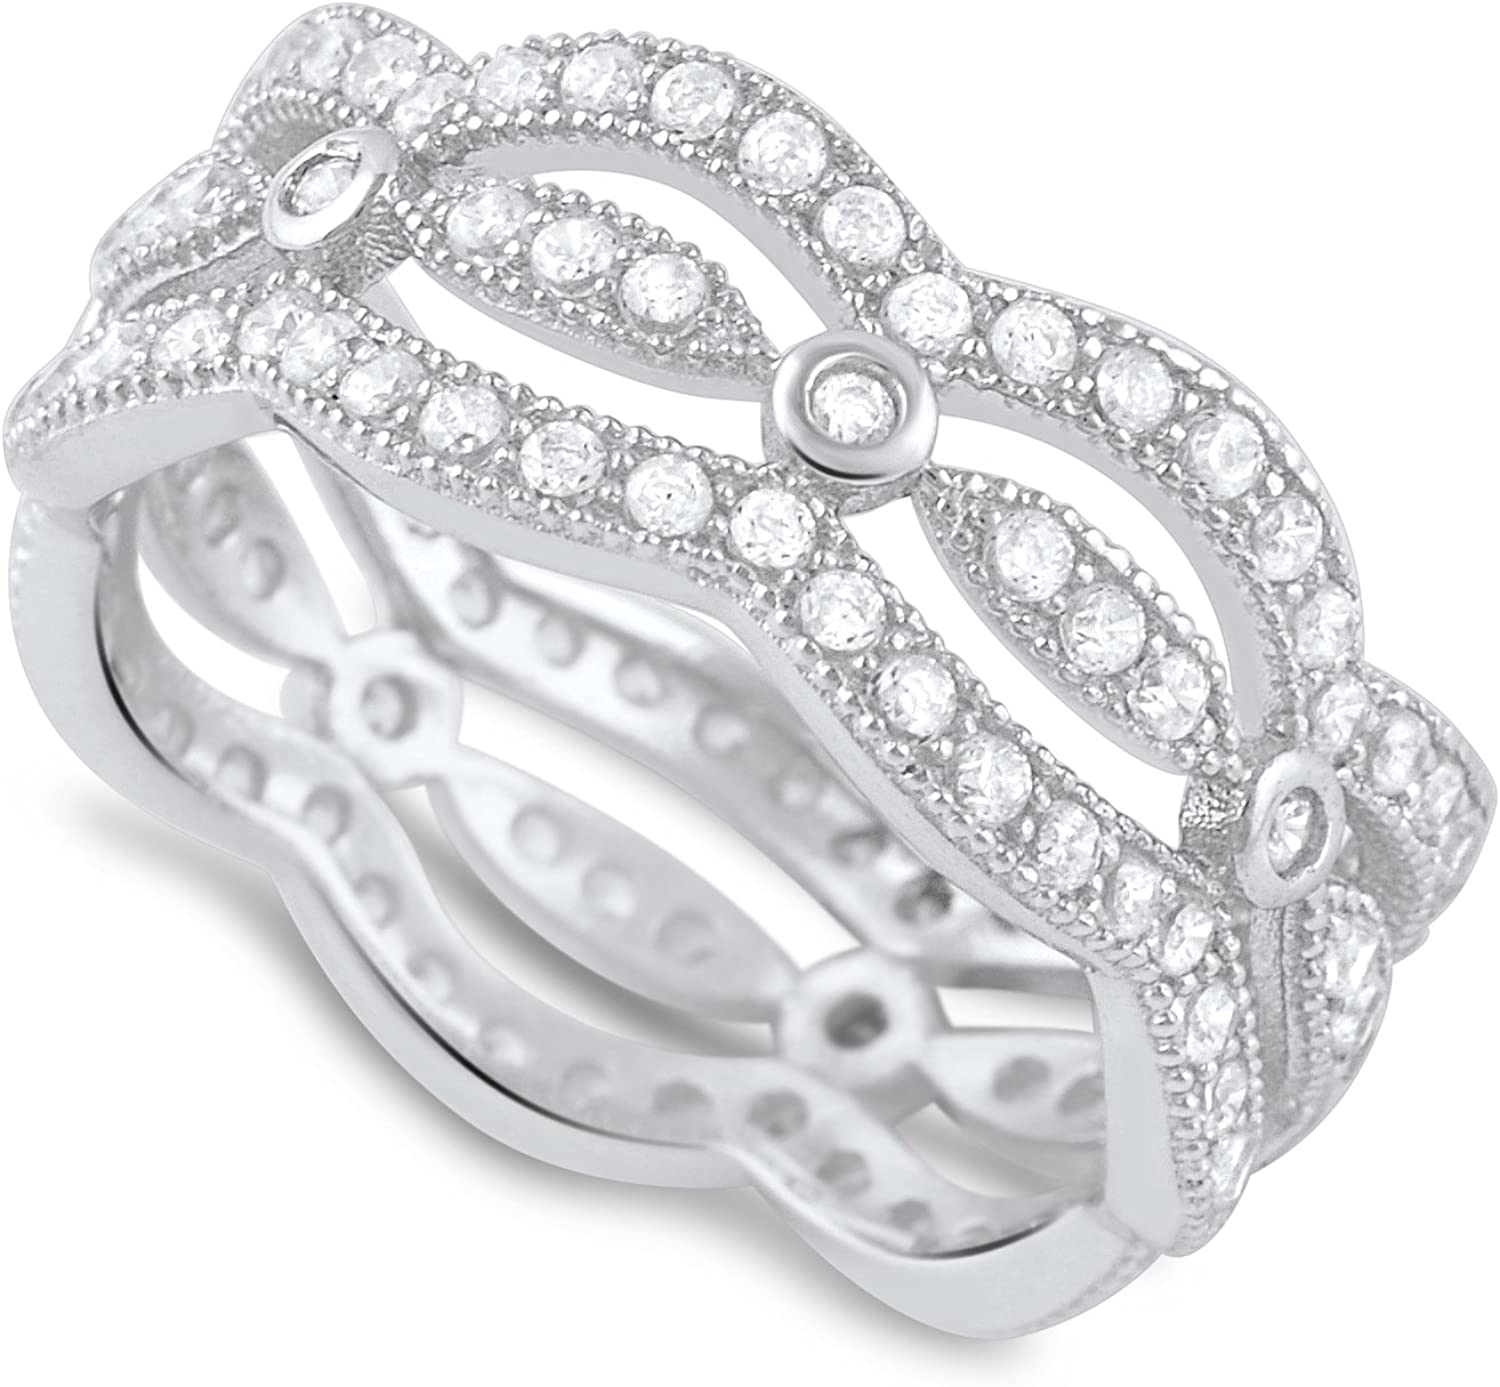 Sterling Silver Cz Stacked Eternity Ring (Size 4-9)